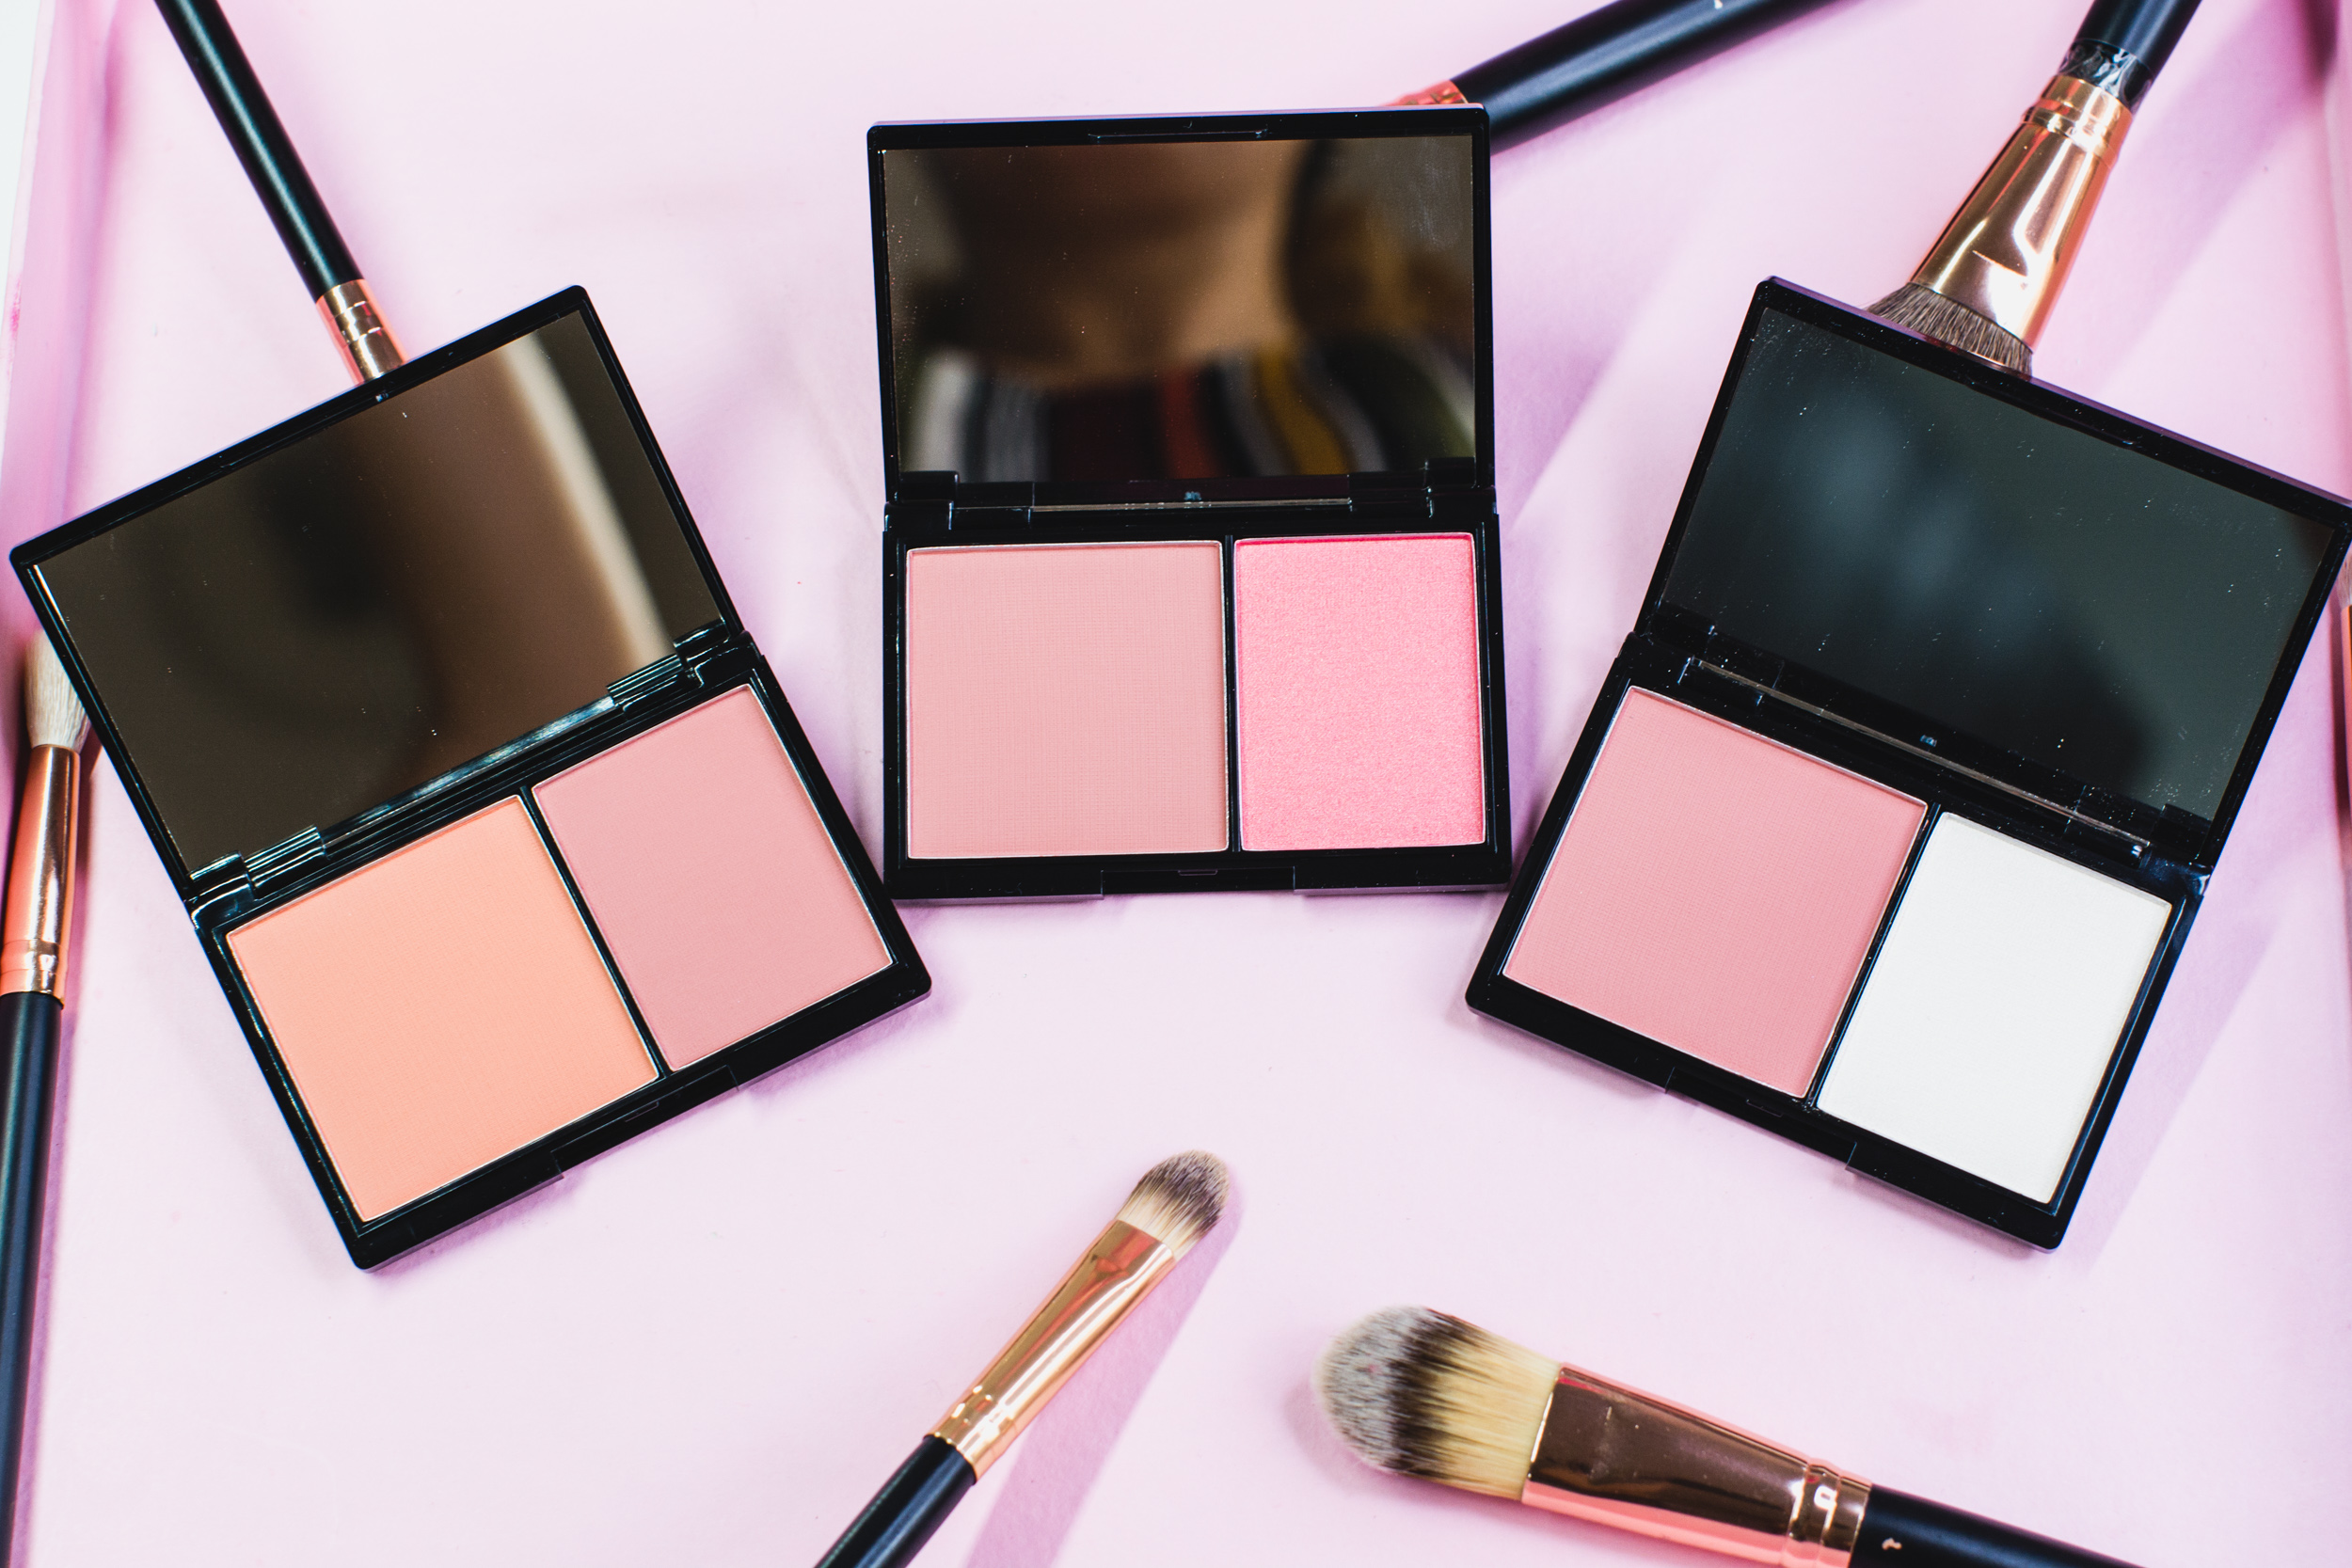 pink-sugar_eye-candy-eyeshadow_sweet-cheeks-duo_review-philippines_2019-9.JPG